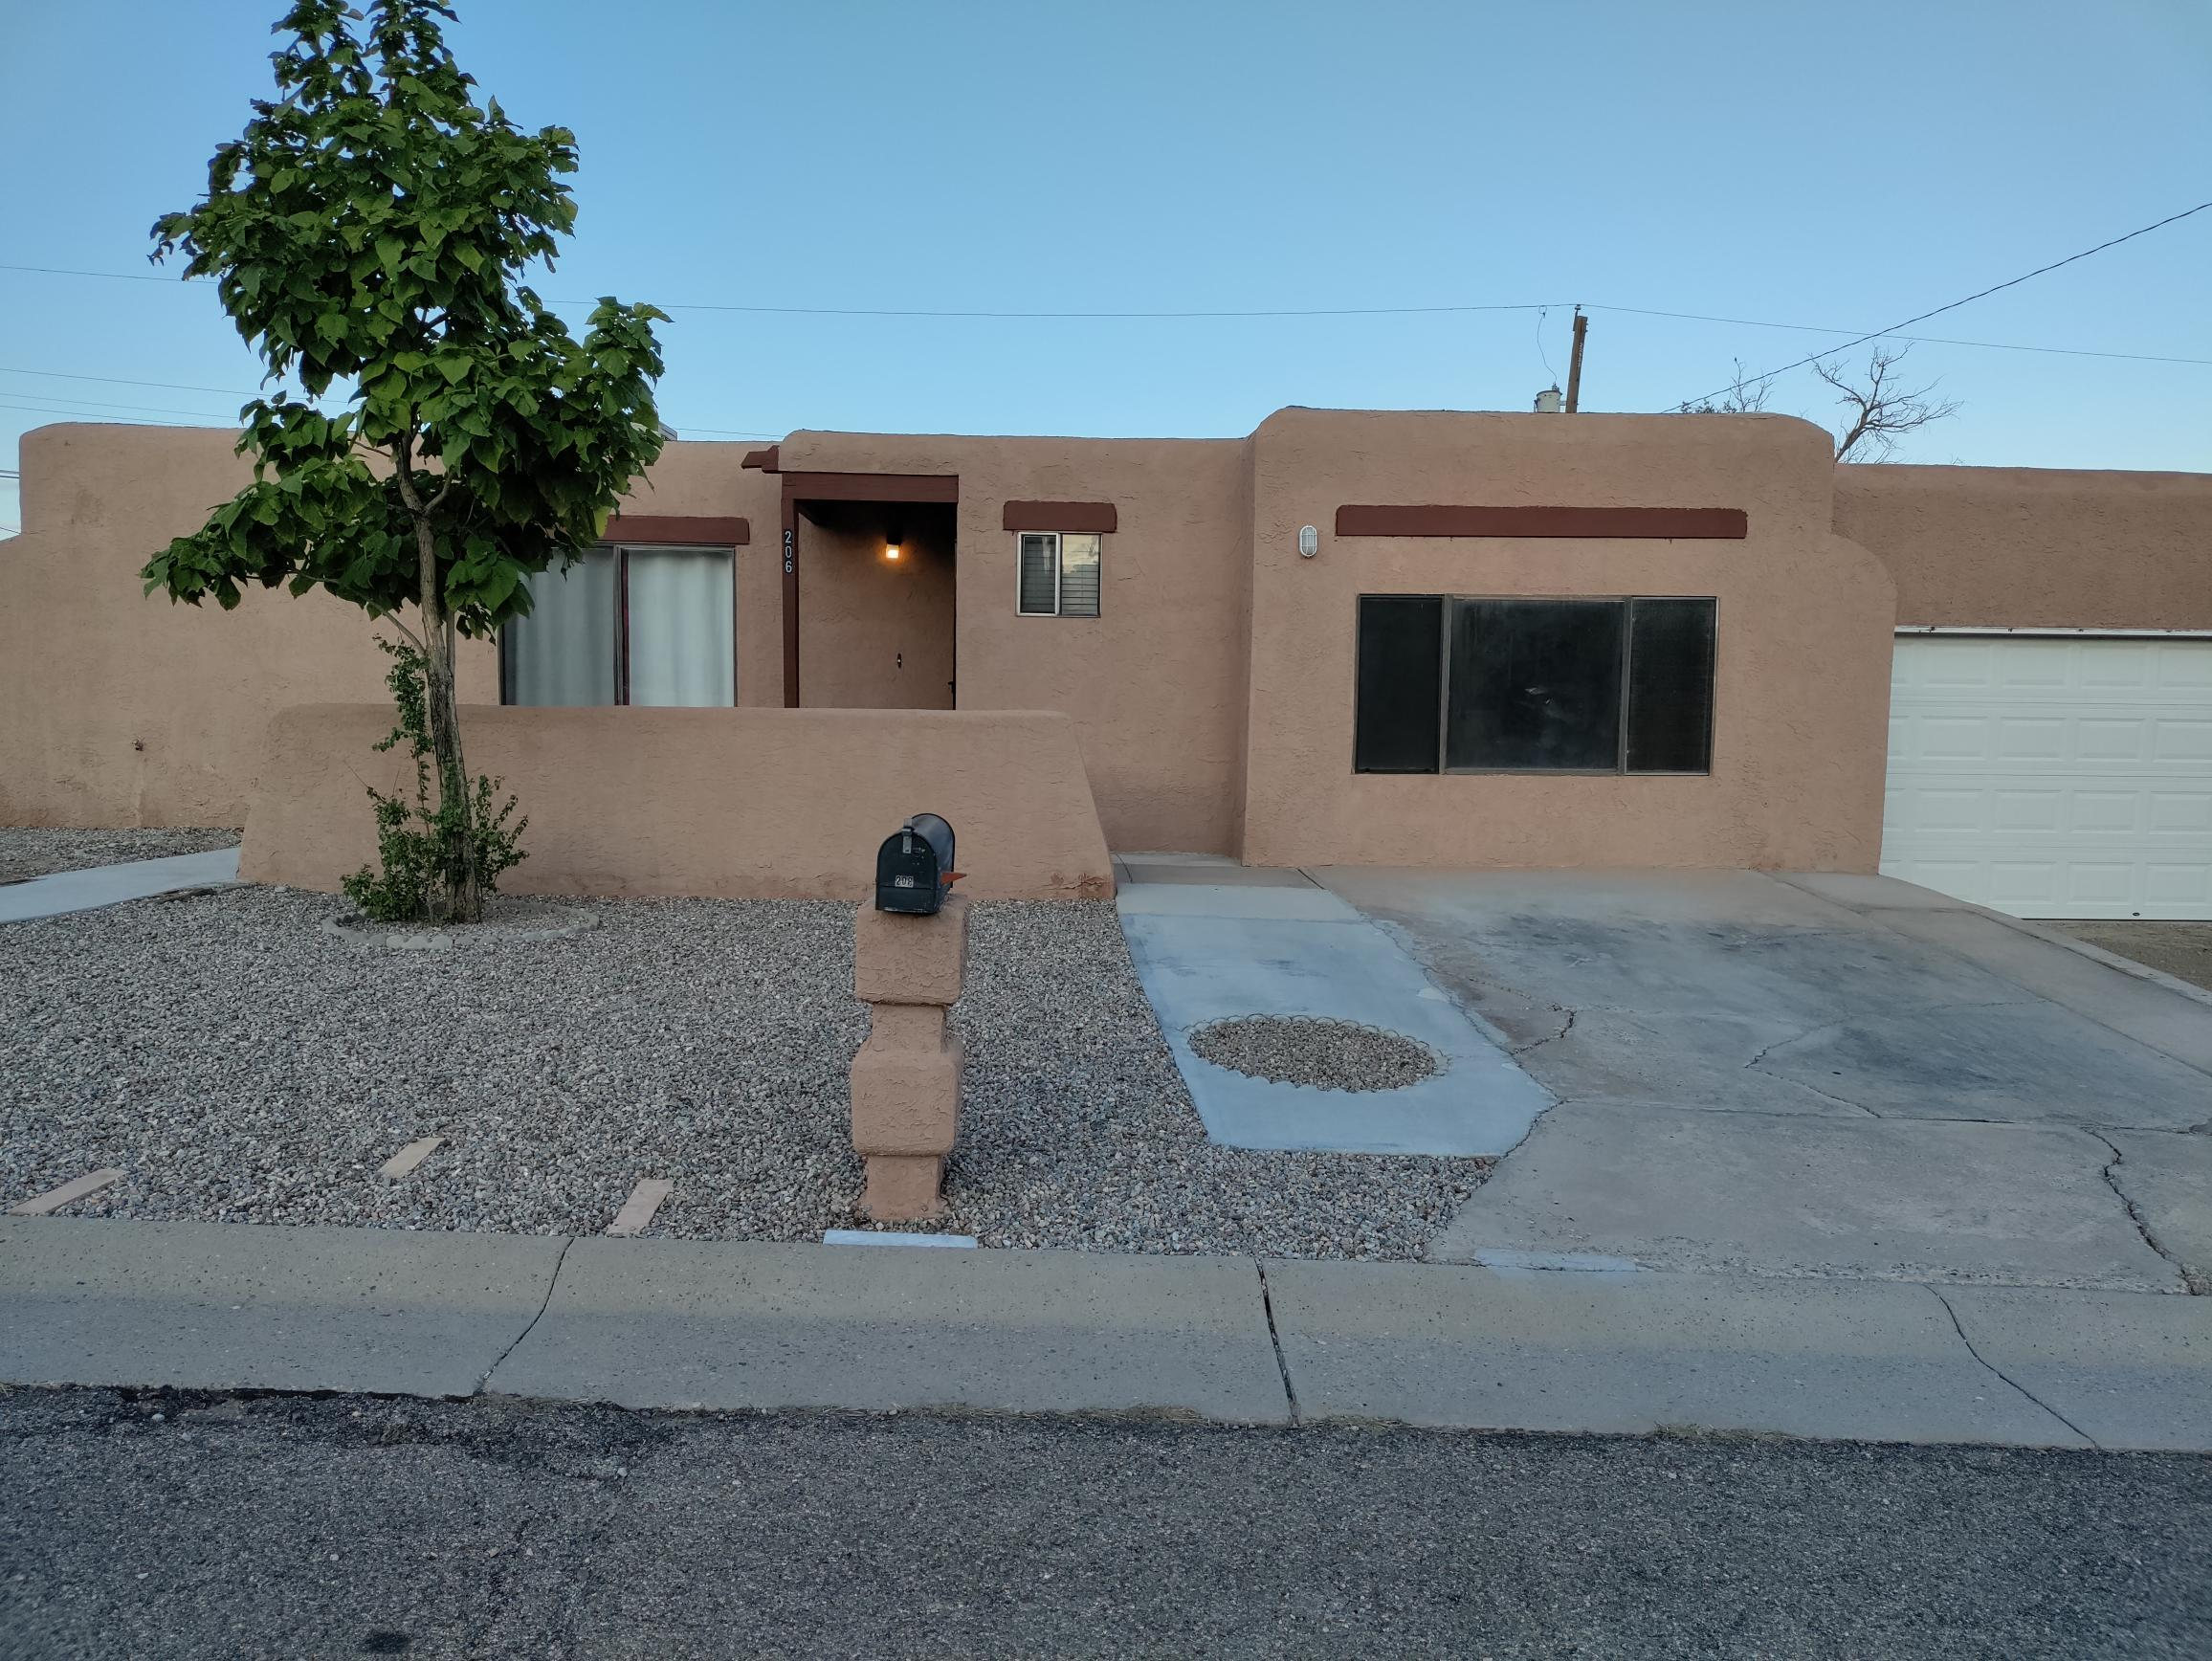 Looking for lots of updates and an open floorpan on a quiet cul-de-sac? This is the home for you! Custom kitchen cabinets and shelving, TWO kitchen islands-one can be used for dining, stainless steel appliances, custom paint throughout living area, floors are ALL tile. Water heater and some windows new in 2021. Beautiful custom tiled showers and built in bathroom niches.Twin loft beds in large guest bedroom with walk in closet. Roof less than 8 yrs old. Back concrete patio has been recently added. Storage shed and dog house stay if desired. Space for multiple cars in front plus an oversized garage with drive-thru to backyard. Conveniently located near Central and Coors. Ready for move in...come make it yours!